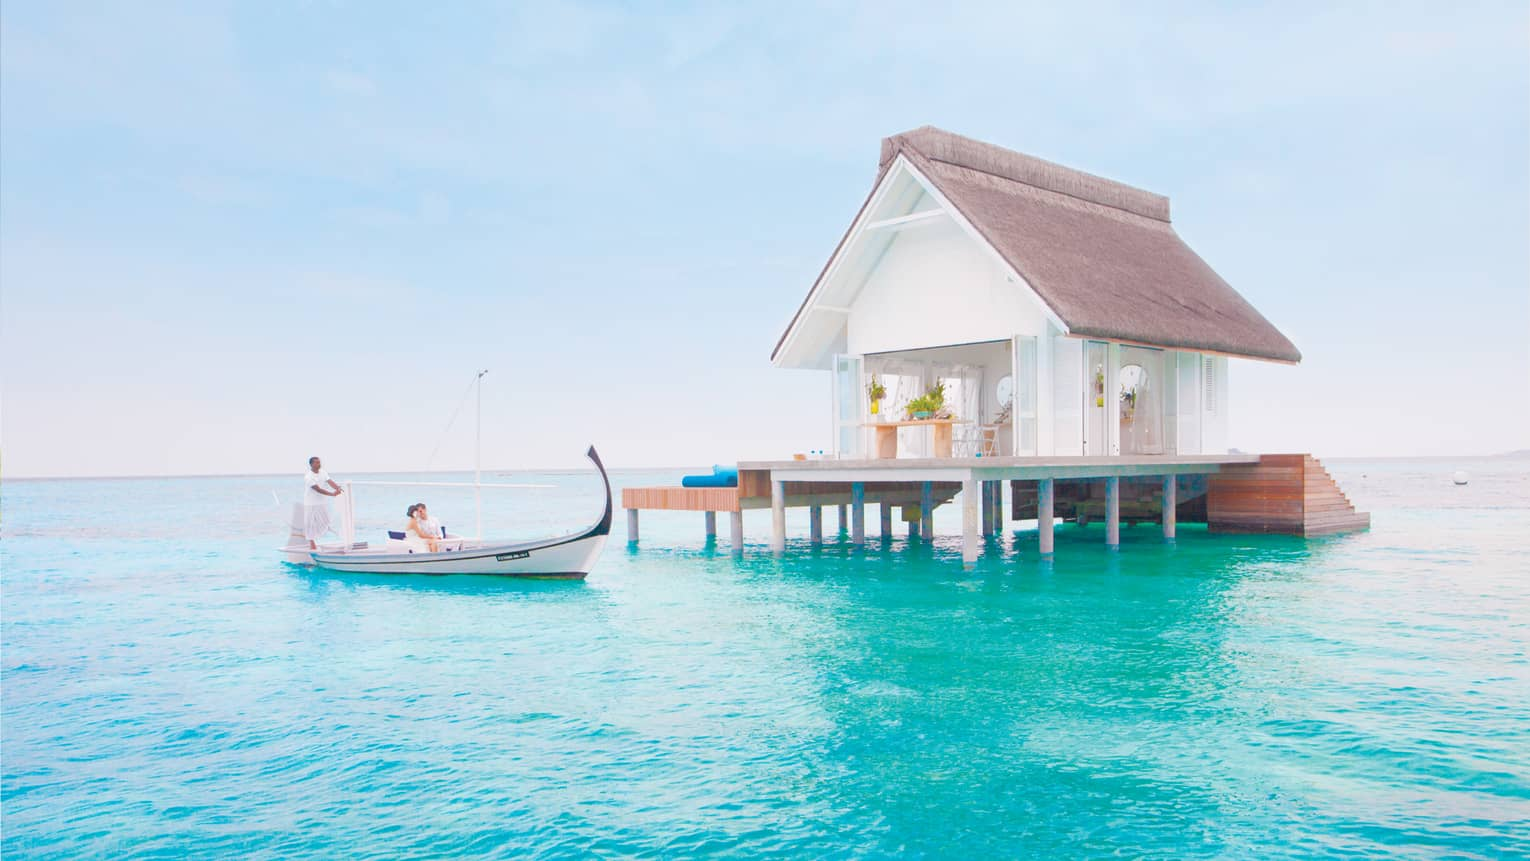 Bride and groom in white canoe on blue lagoon under small white bungalow